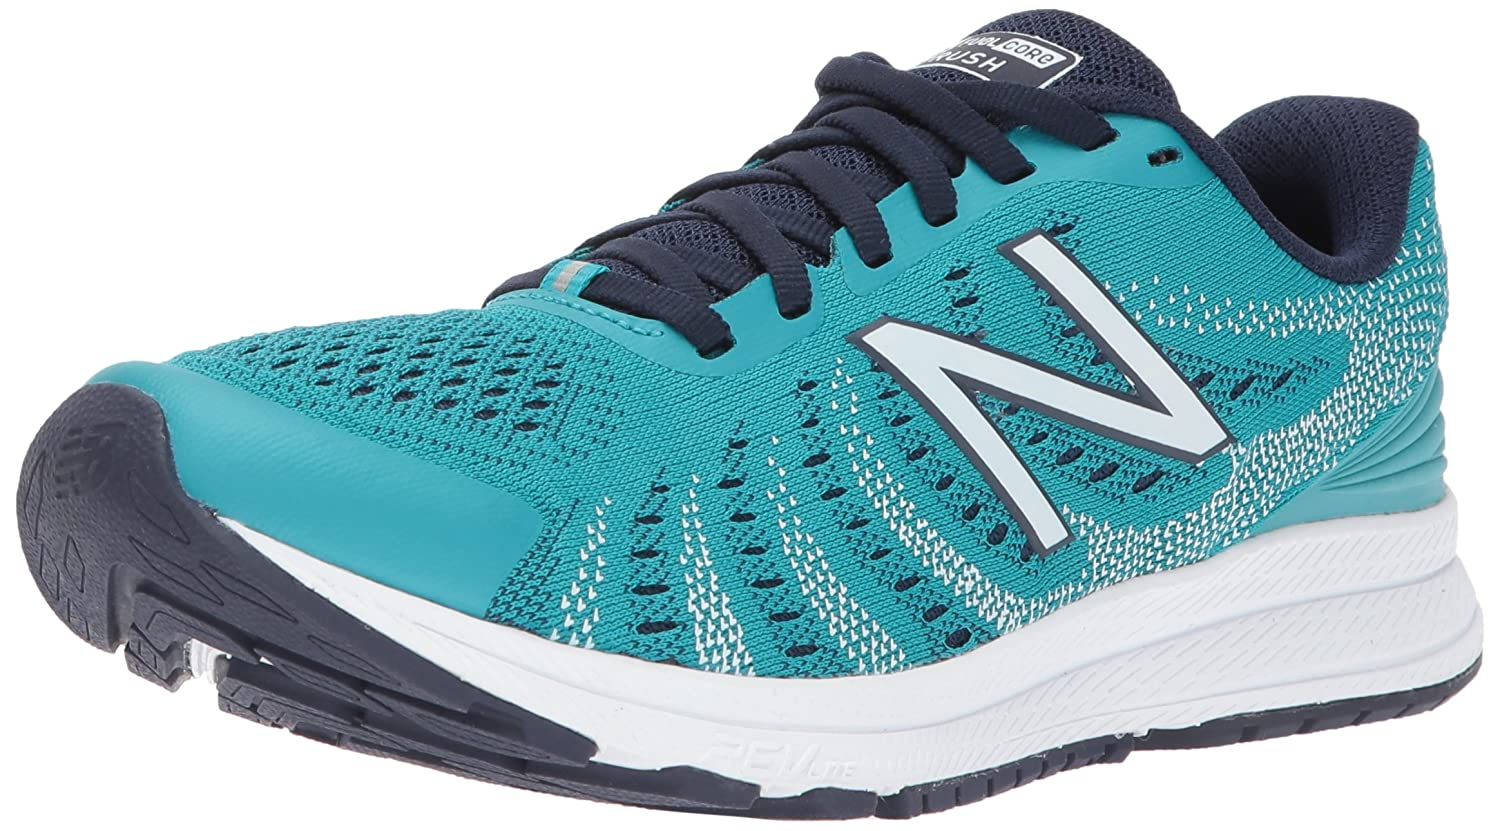 New Balance Women's Rushv3 Running-Shoes B01N77XOGO 10 D US|Pisces/Pigment